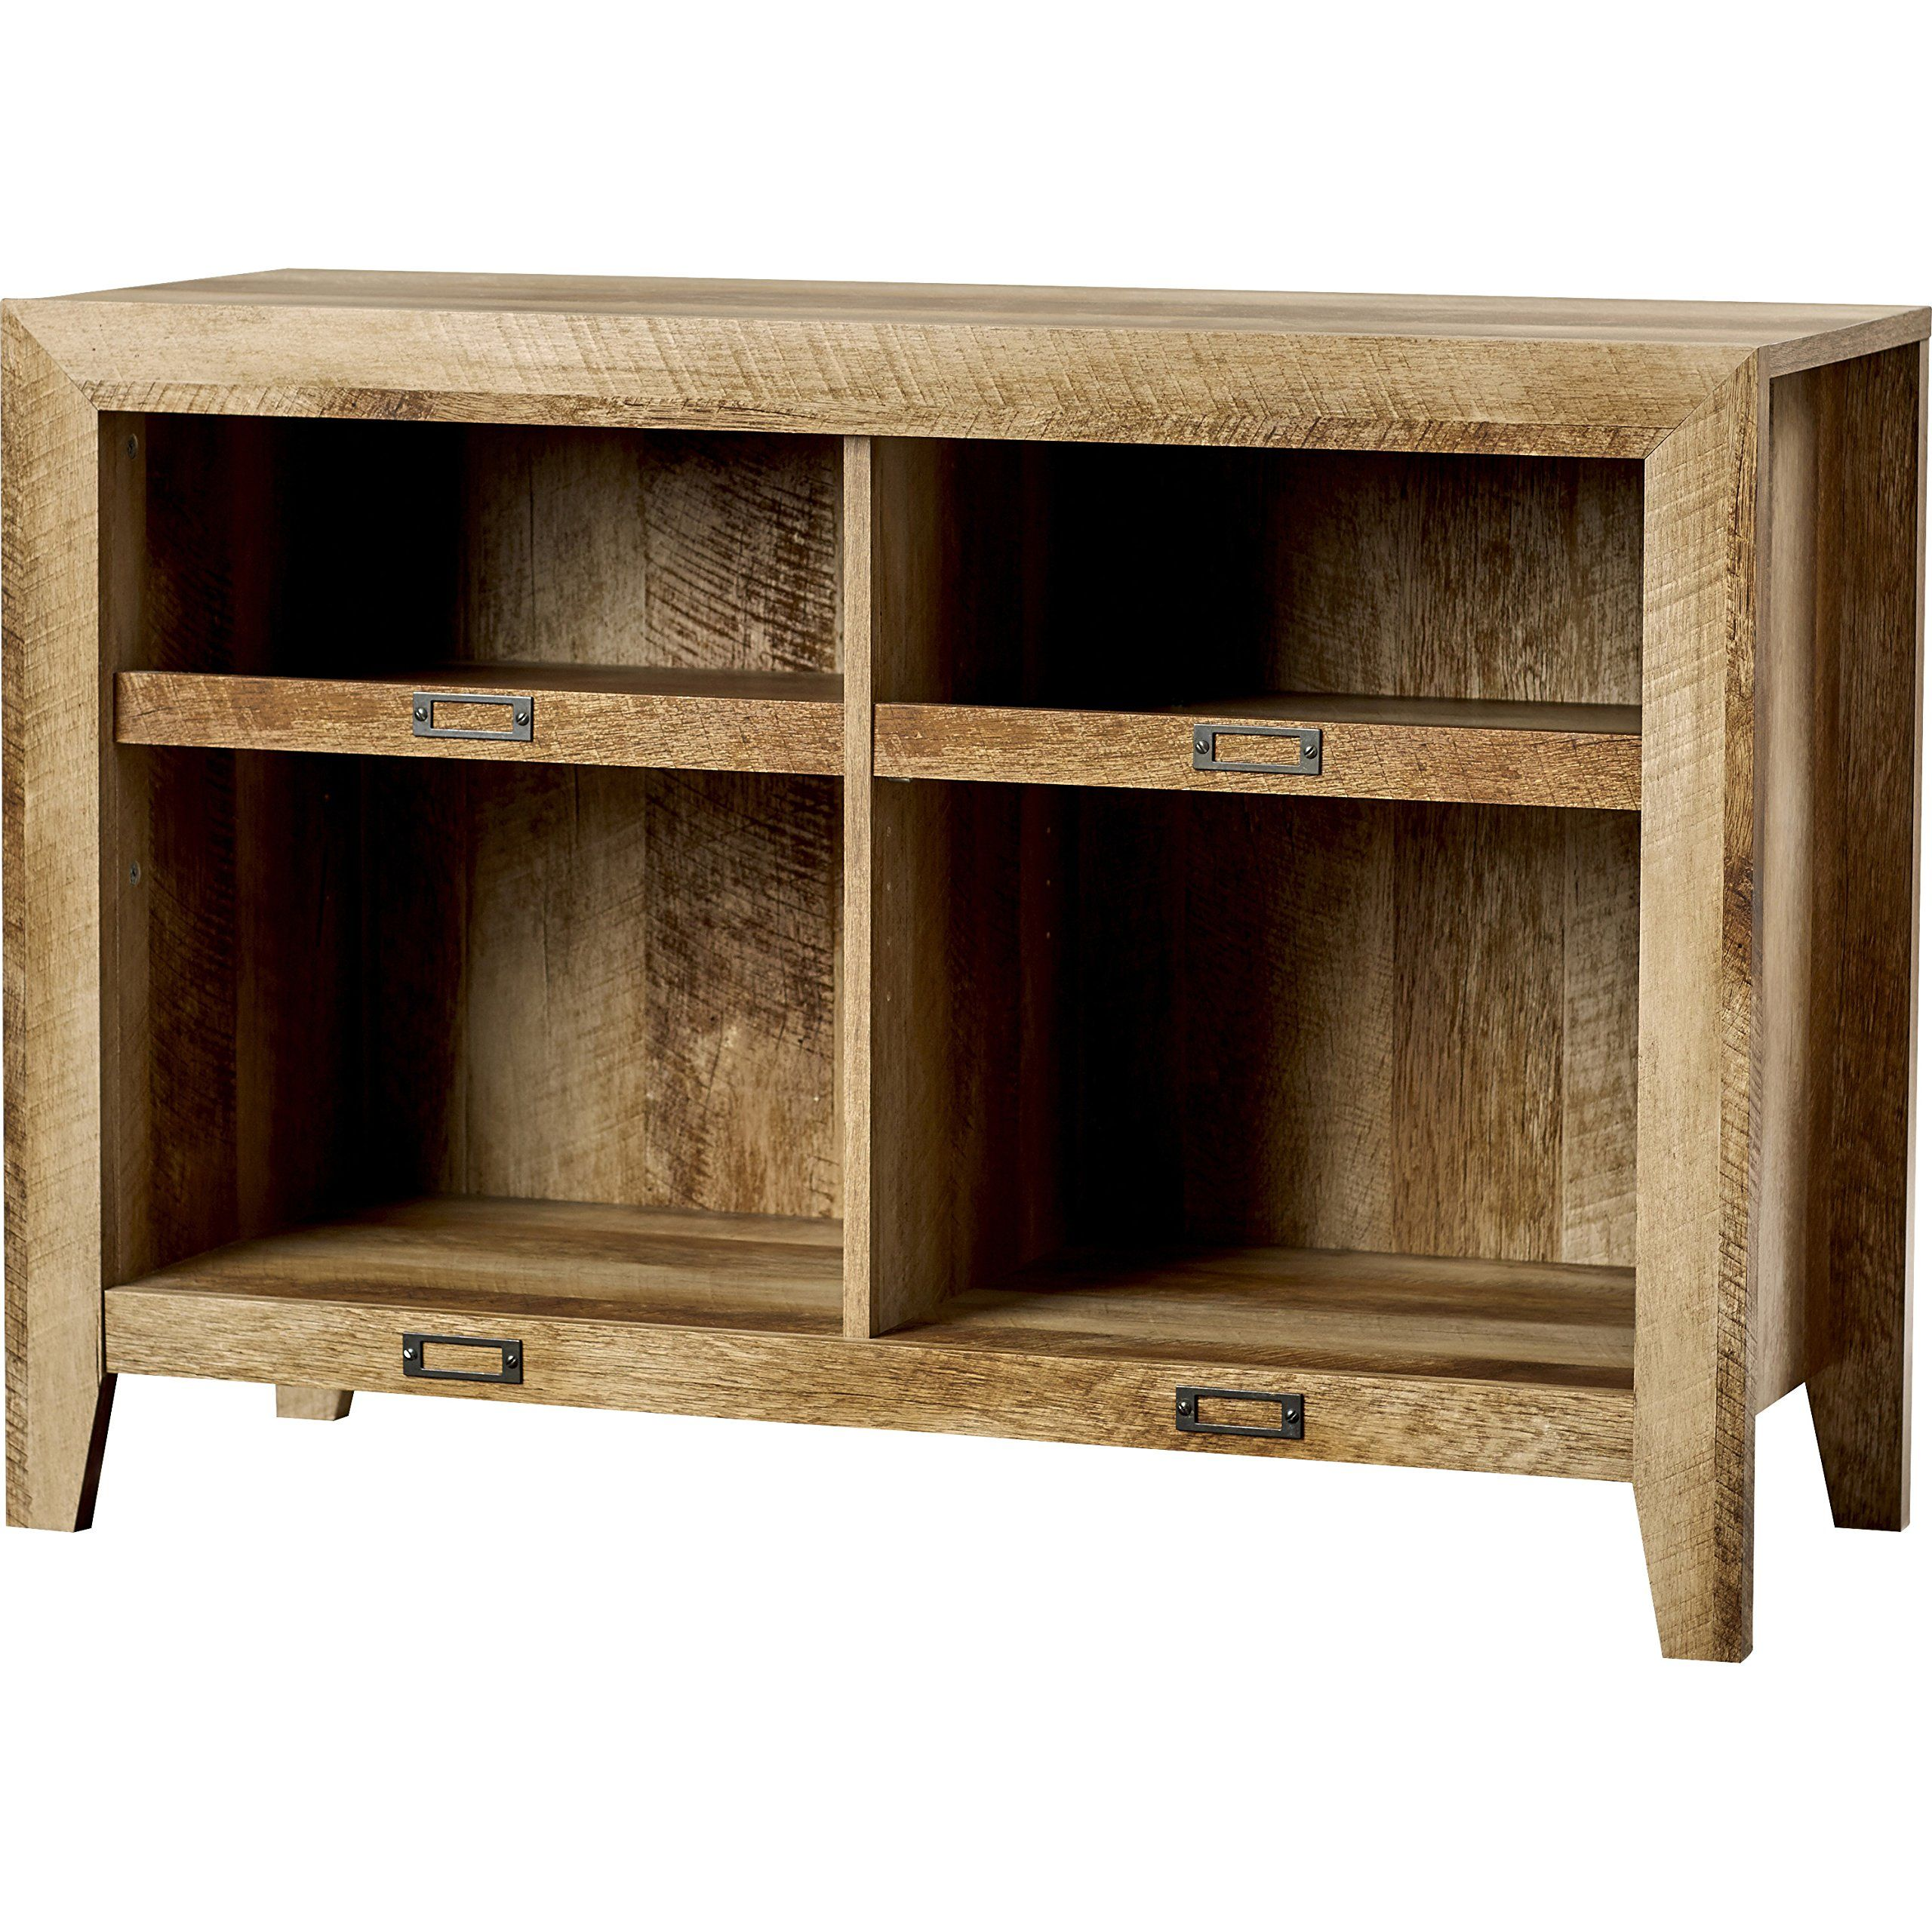 Rustic Oak TV Stand Farmhouse Style For Your Entertainment Space  Country Inspired In Oak Brown · Stand DesignCoastal DecorOffice FurnitureHome  ...